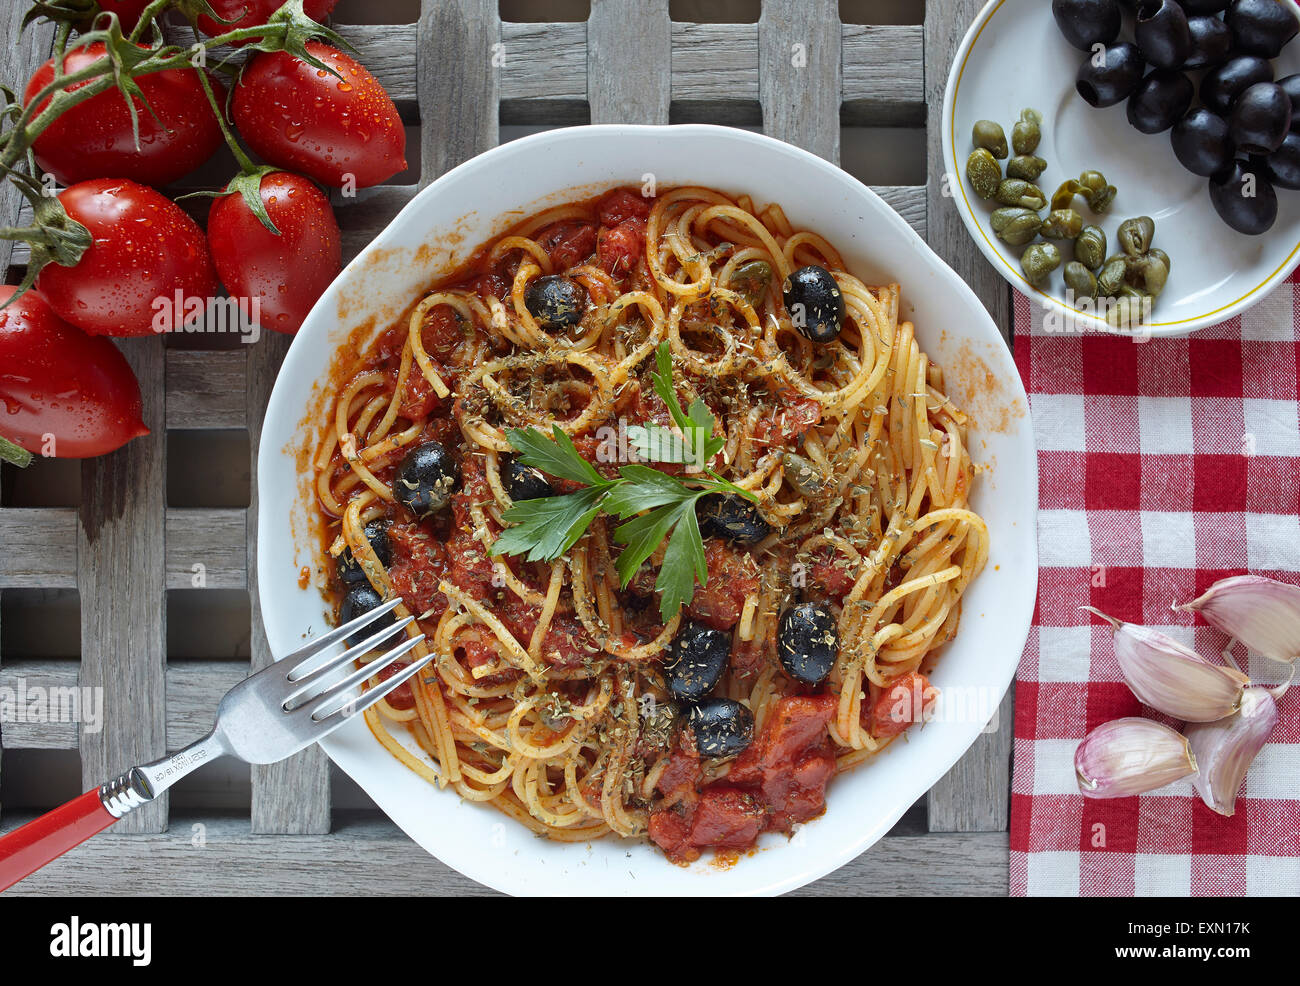 italian food: pasta with tomatoes, olives and capers, called puttanesca - Stock Image